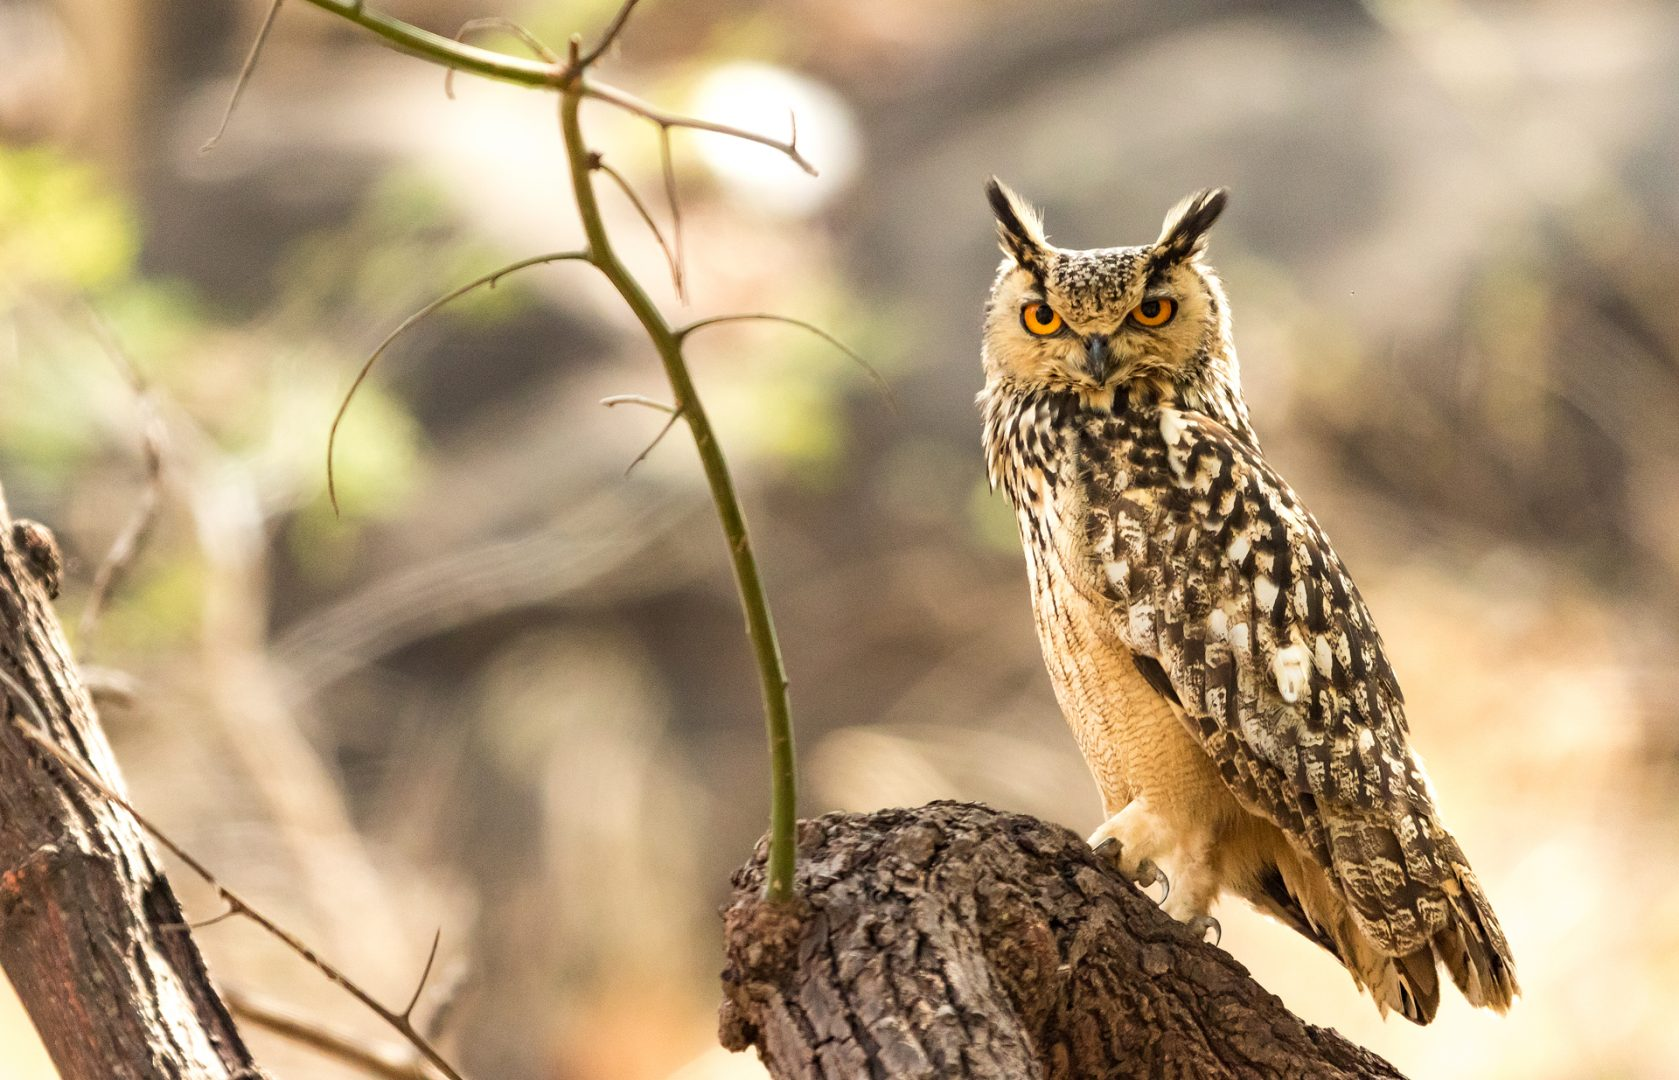 Indian Eagle Owl, Satpura National Park, India.